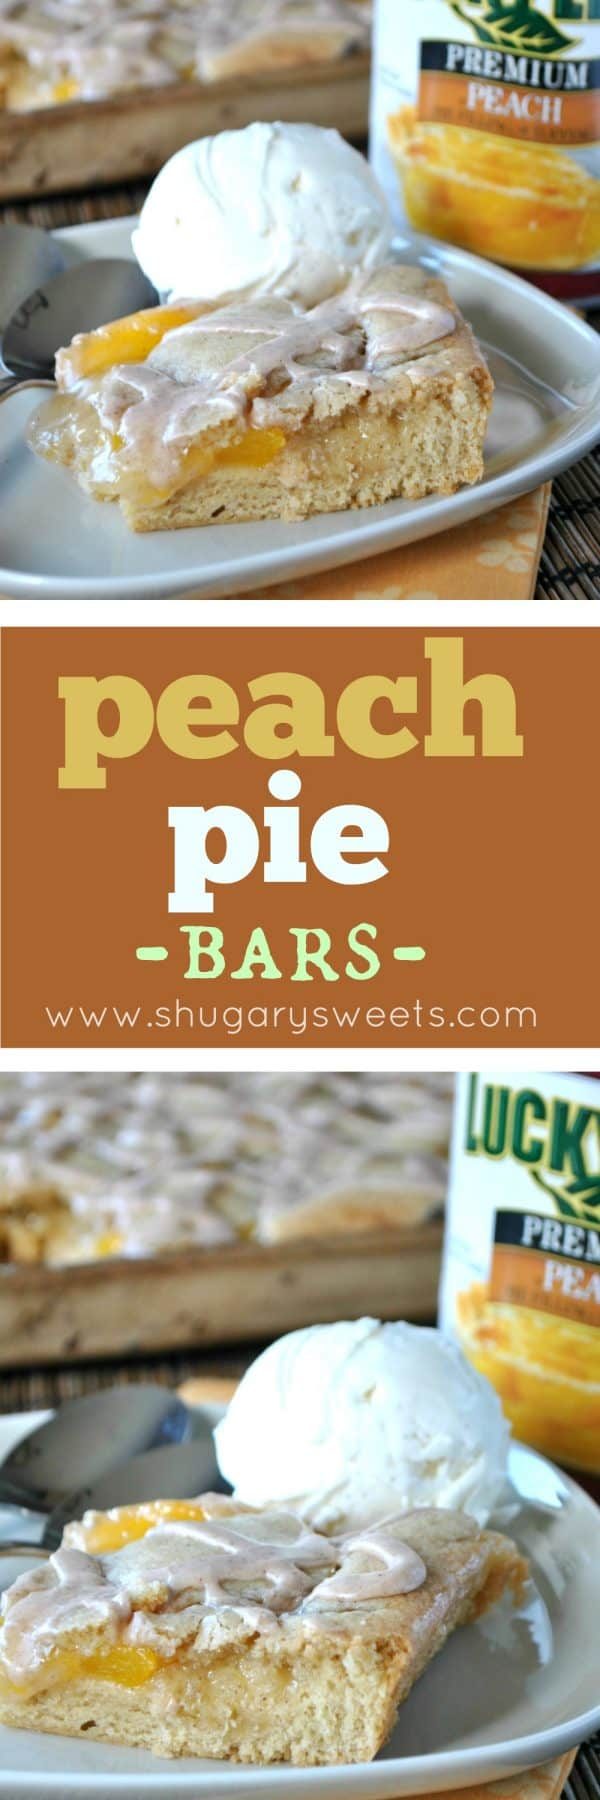 If you love peaches, this deliciously easy Peach Pie Bars recipe is just for you! No pie crust making skills needed! #luckyleaf #sponsored #peachpie #dessert